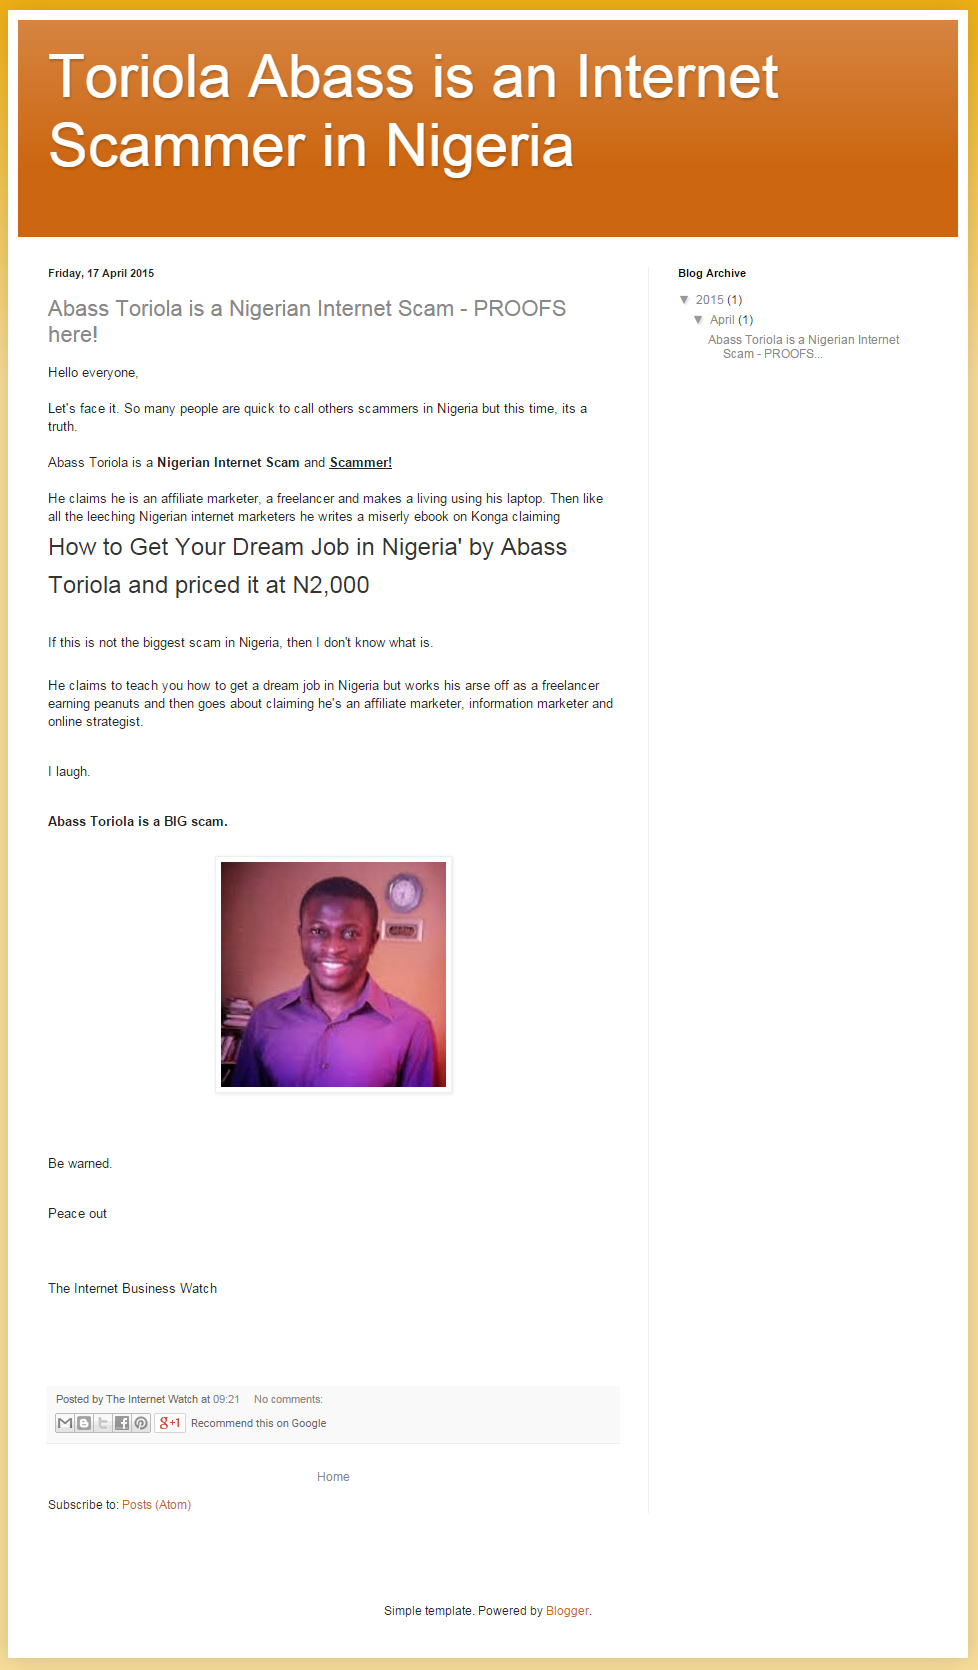 Toriola Abass is an Internet Scammer in Nigeria (1)